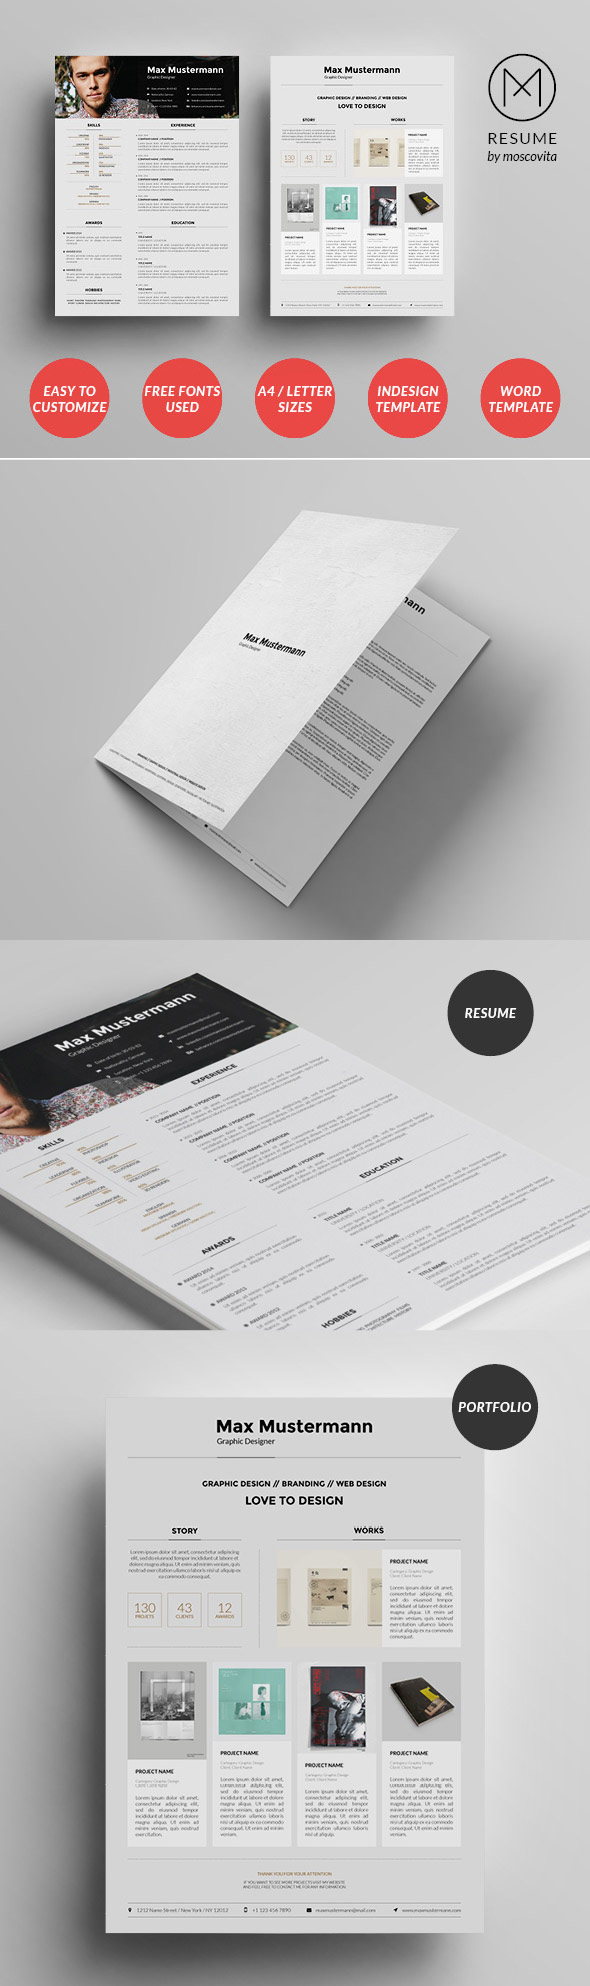 50 best resume templates design graphic design junction structured creative resume template design